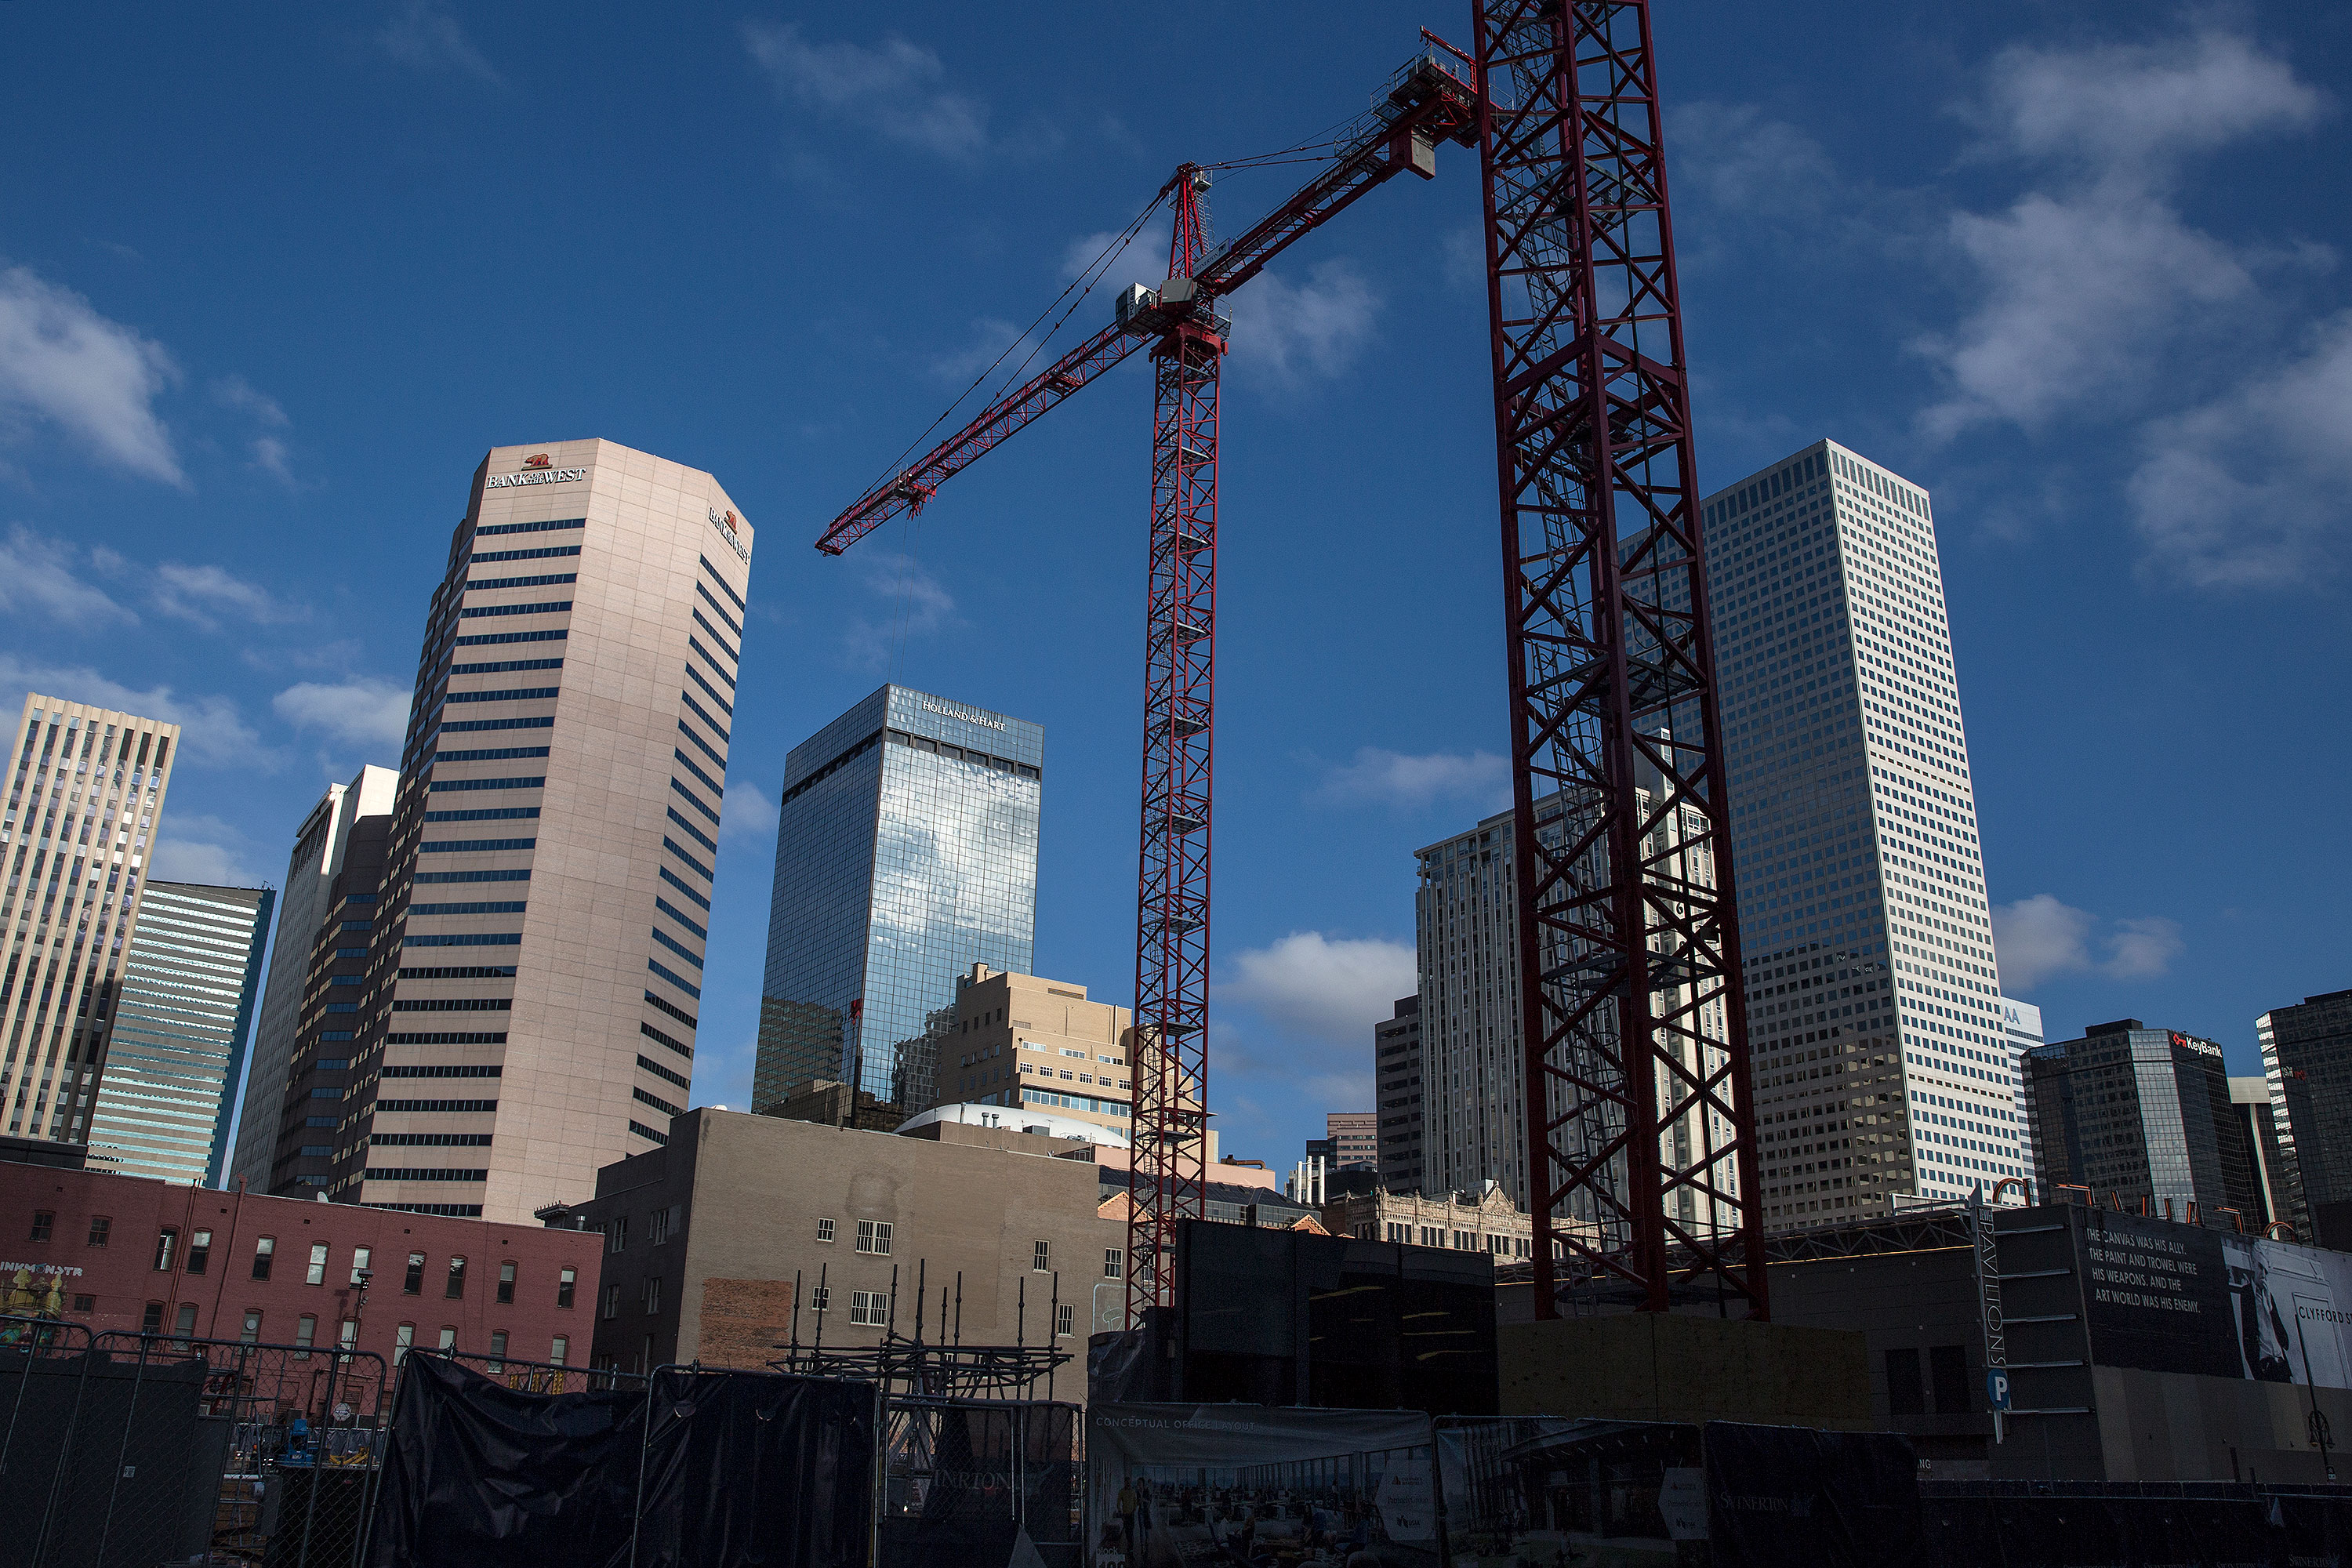 Construction cranes in downtown Denver Friday Dec. 28, 2018.